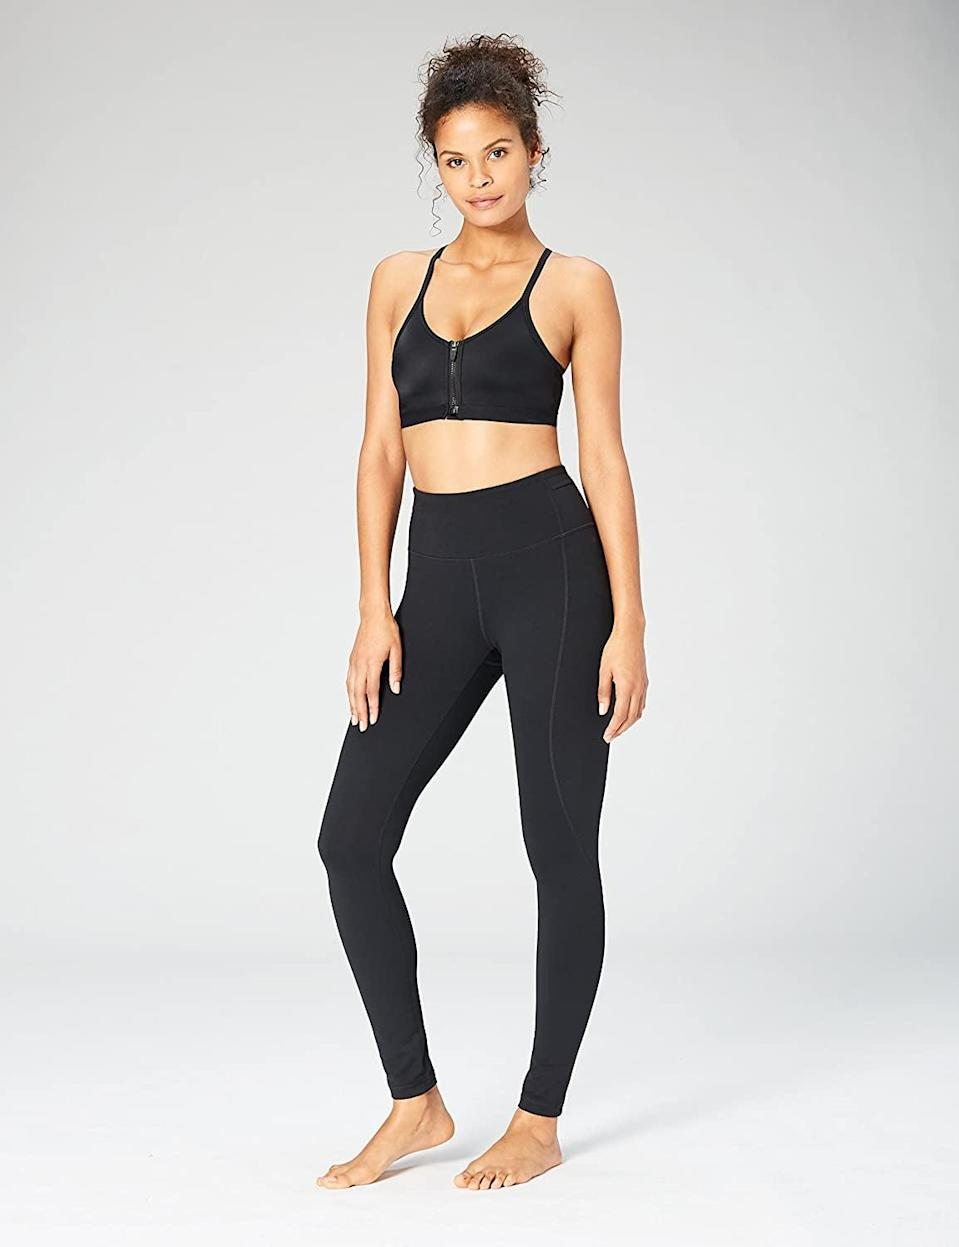 """<p>Available in extended sizing, customers praise the <a href=""""https://www.popsugar.com/buy/Core-10-Women-Build-Your-Own-Yoga-Pant-Full-Length-Legging-365697?p_name=Core%2010%20Women%27s%20Build%20Your%20Own%20Yoga%20Pant%20Full-Length%20Legging&retailer=amazon.com&pid=365697&price=45&evar1=fit%3Aus&evar9=45278643&evar98=https%3A%2F%2Fwww.popsugar.com%2Ffitness%2Fphoto-gallery%2F45278643%2Fimage%2F45278644%2FCore-10-Womens-Build-Your-Own-Yoga-Pant-Full-Length-Legging&list1=shopping%2Camazon%2Cworkout%20clothes%2Cleggings%2Cfitness%20gear&prop13=mobile&pdata=1"""" class=""""link rapid-noclick-resp"""" rel=""""nofollow noopener"""" target=""""_blank"""" data-ylk=""""slk:Core 10 Women's Build Your Own Yoga Pant Full-Length Legging"""">Core 10 Women's Build Your Own Yoga Pant Full-Length Legging</a> ($45) because they're comfortable and warm yet breathable.</p>"""